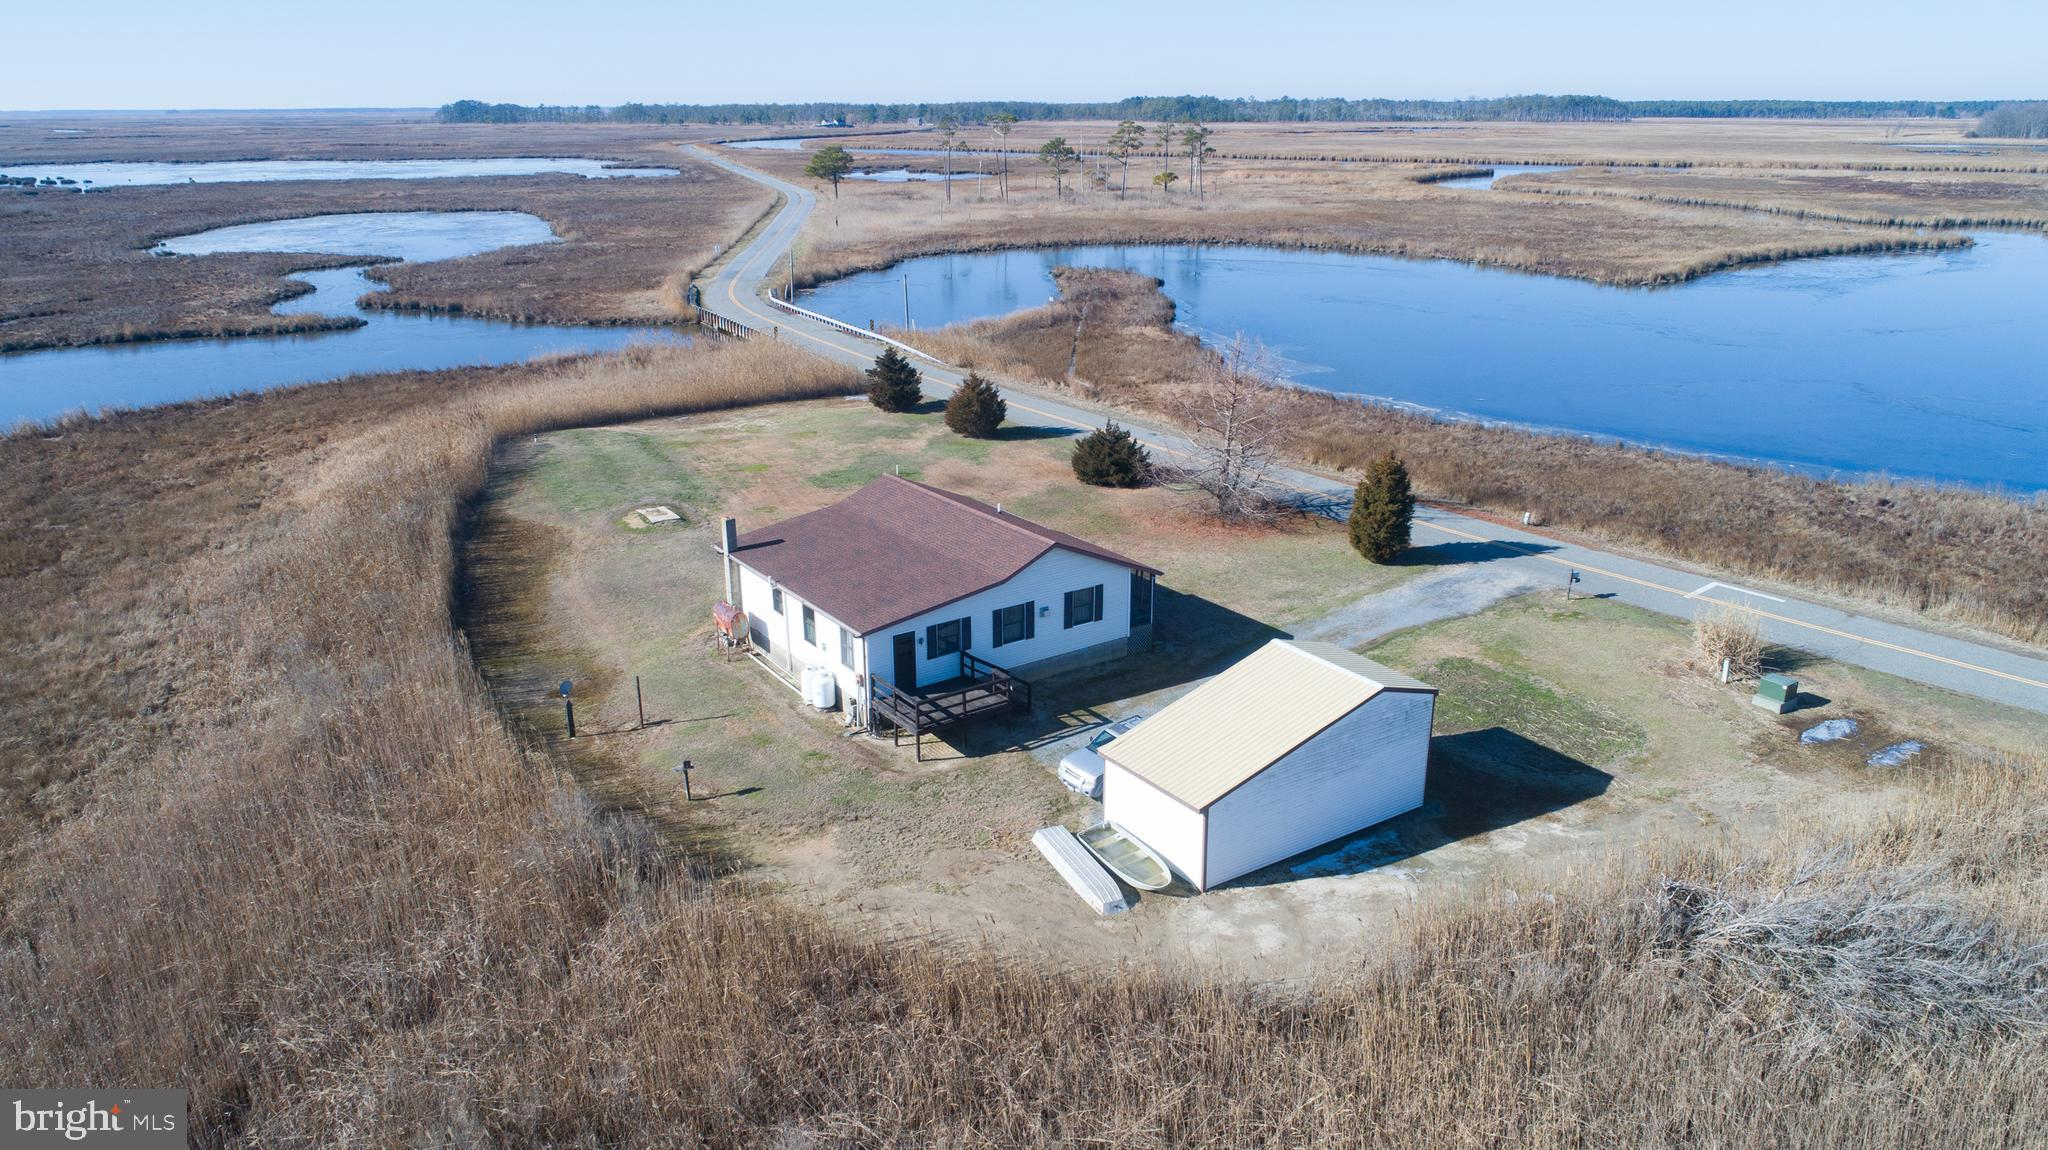 Looking for a private waterfront spot to call your own?  This is it!  3 +/- acres with tranquil views across marsh and the Transquaking River.  Enjoy your own private dock for fishing, crabbing or just watching the tide move! Cute 2 BR cottage in excellent condition. Large rooms  and 1 1/2 baths.  Screened front porch and side deck. Also includes a large shop/outbuilding for all your hobbies. Established garden planted for this year - buy now and enjoy fresh vegetables all summer! Recently surveyed.The bridge at Bestpitch is closed. Go through  Vienna -